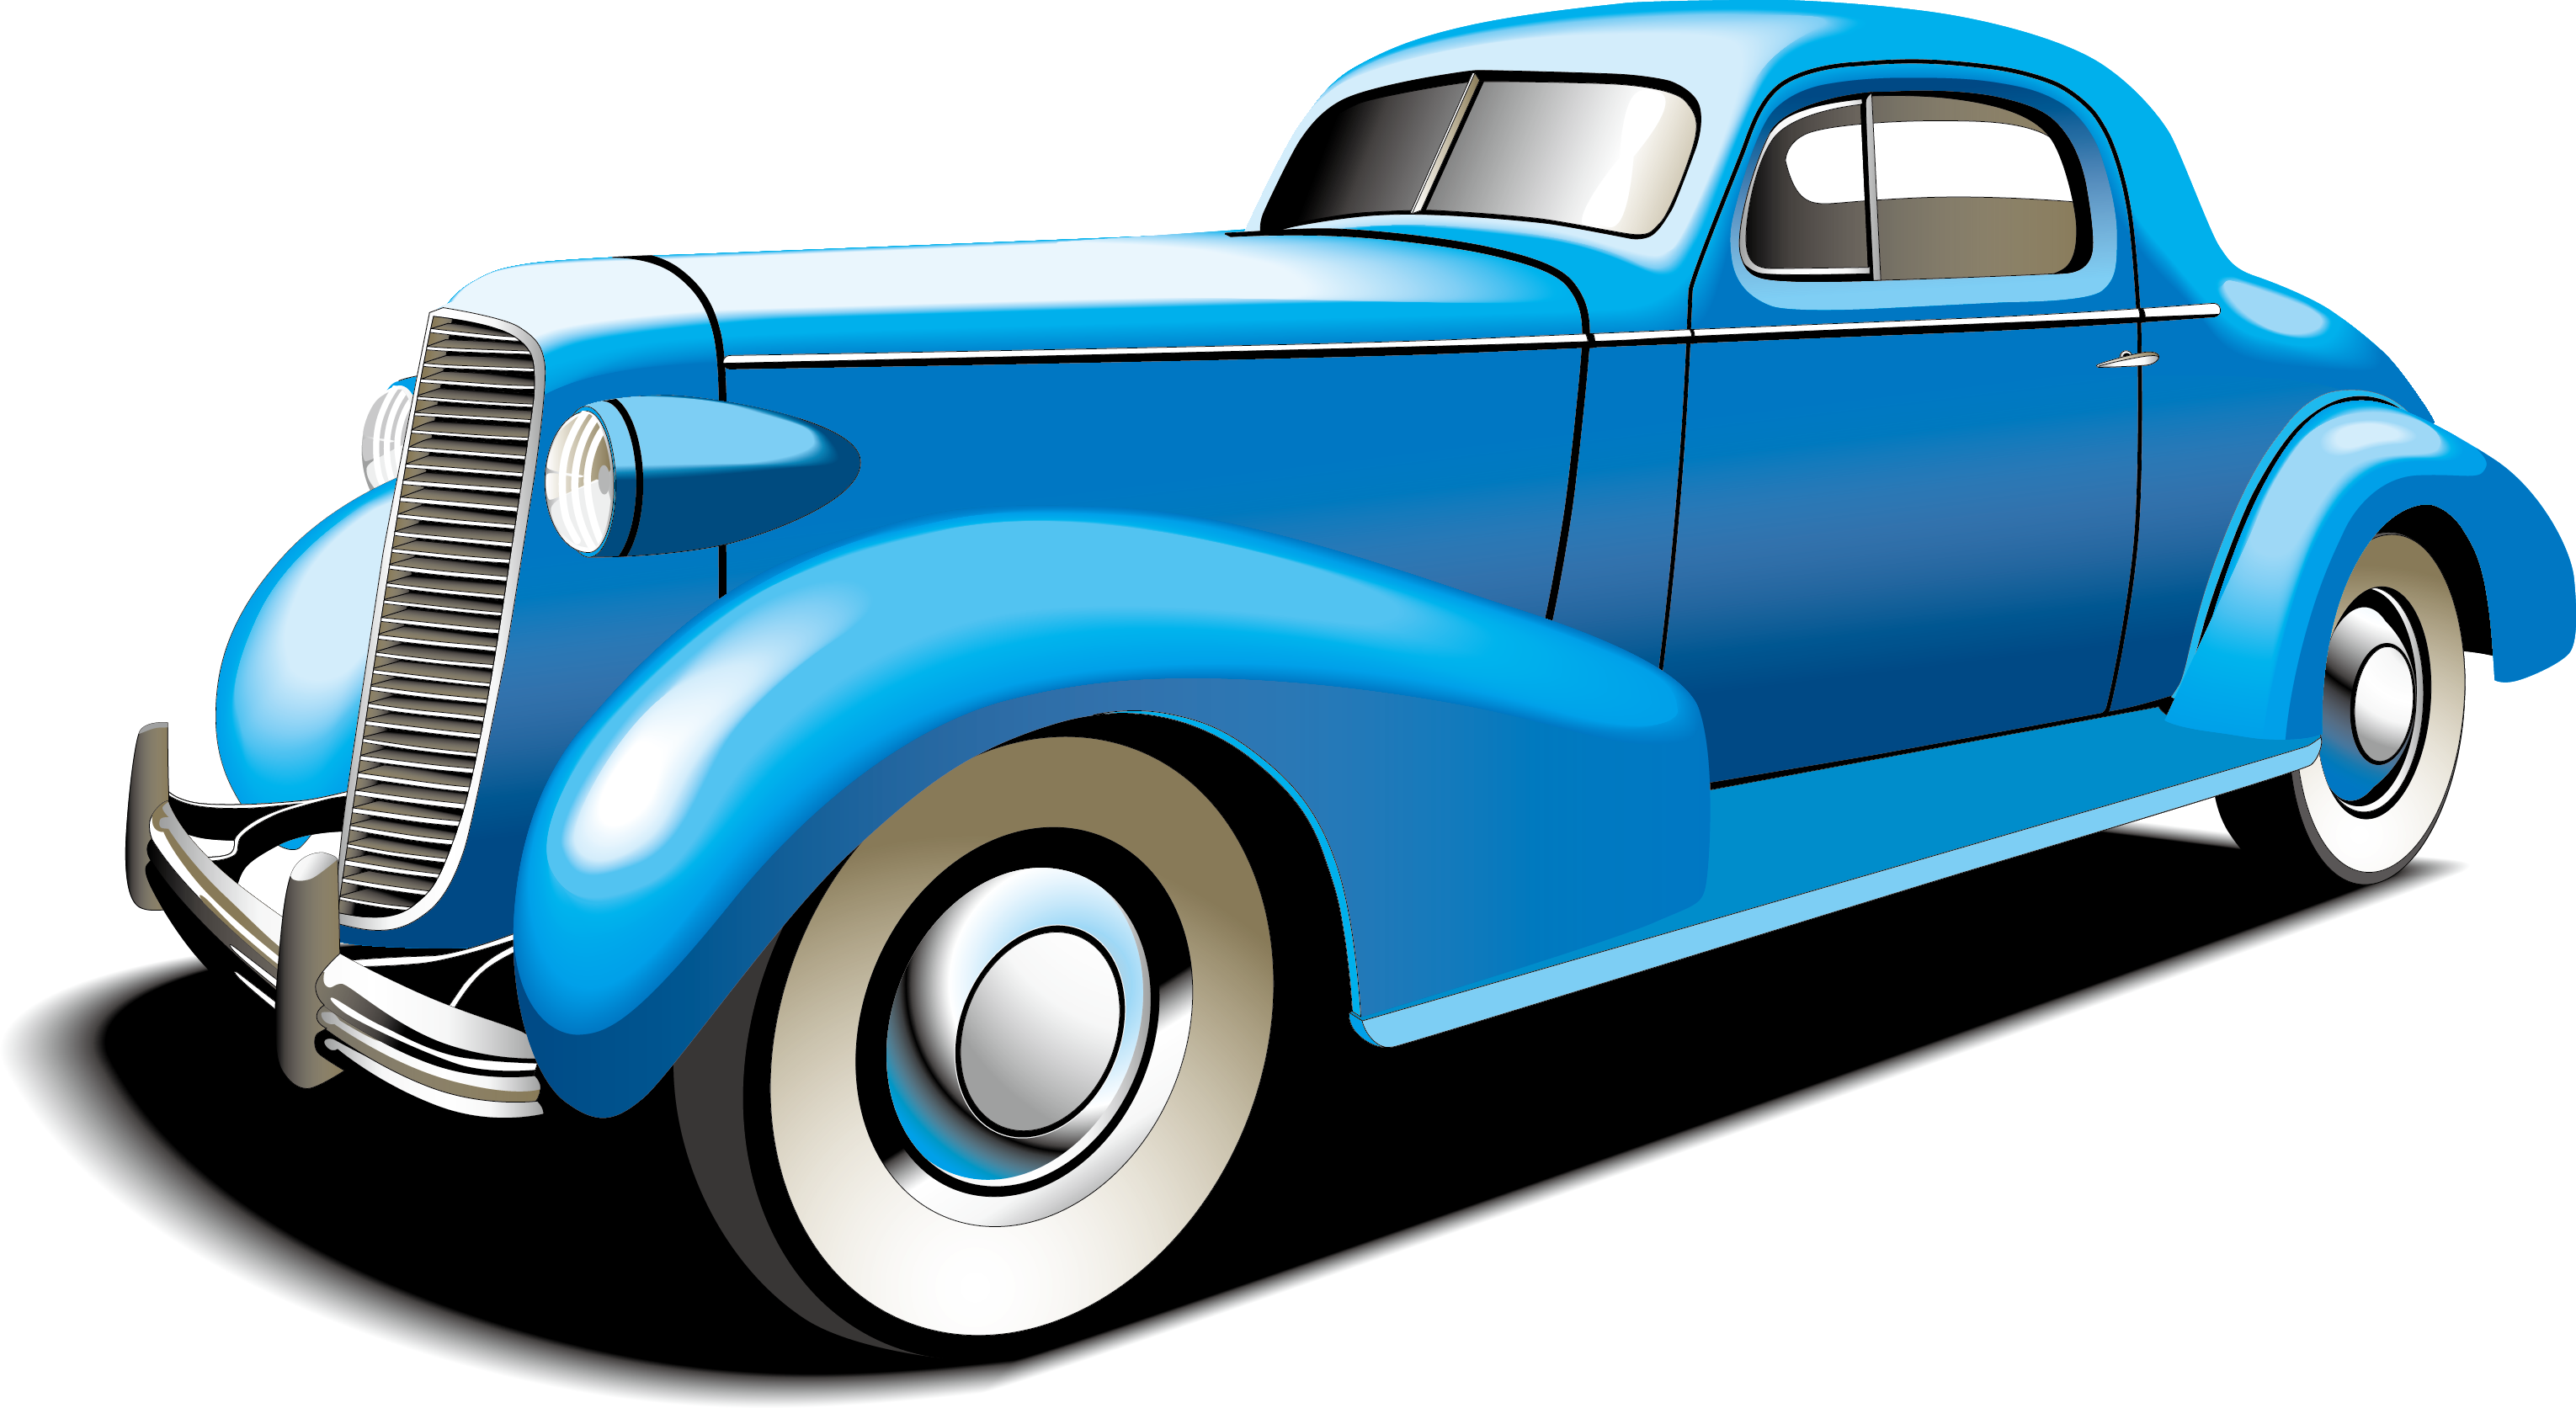 Antique car clipart graphic freeuse stock Classic car Vintage car Antique car Clip art - Classic classic car ... graphic freeuse stock